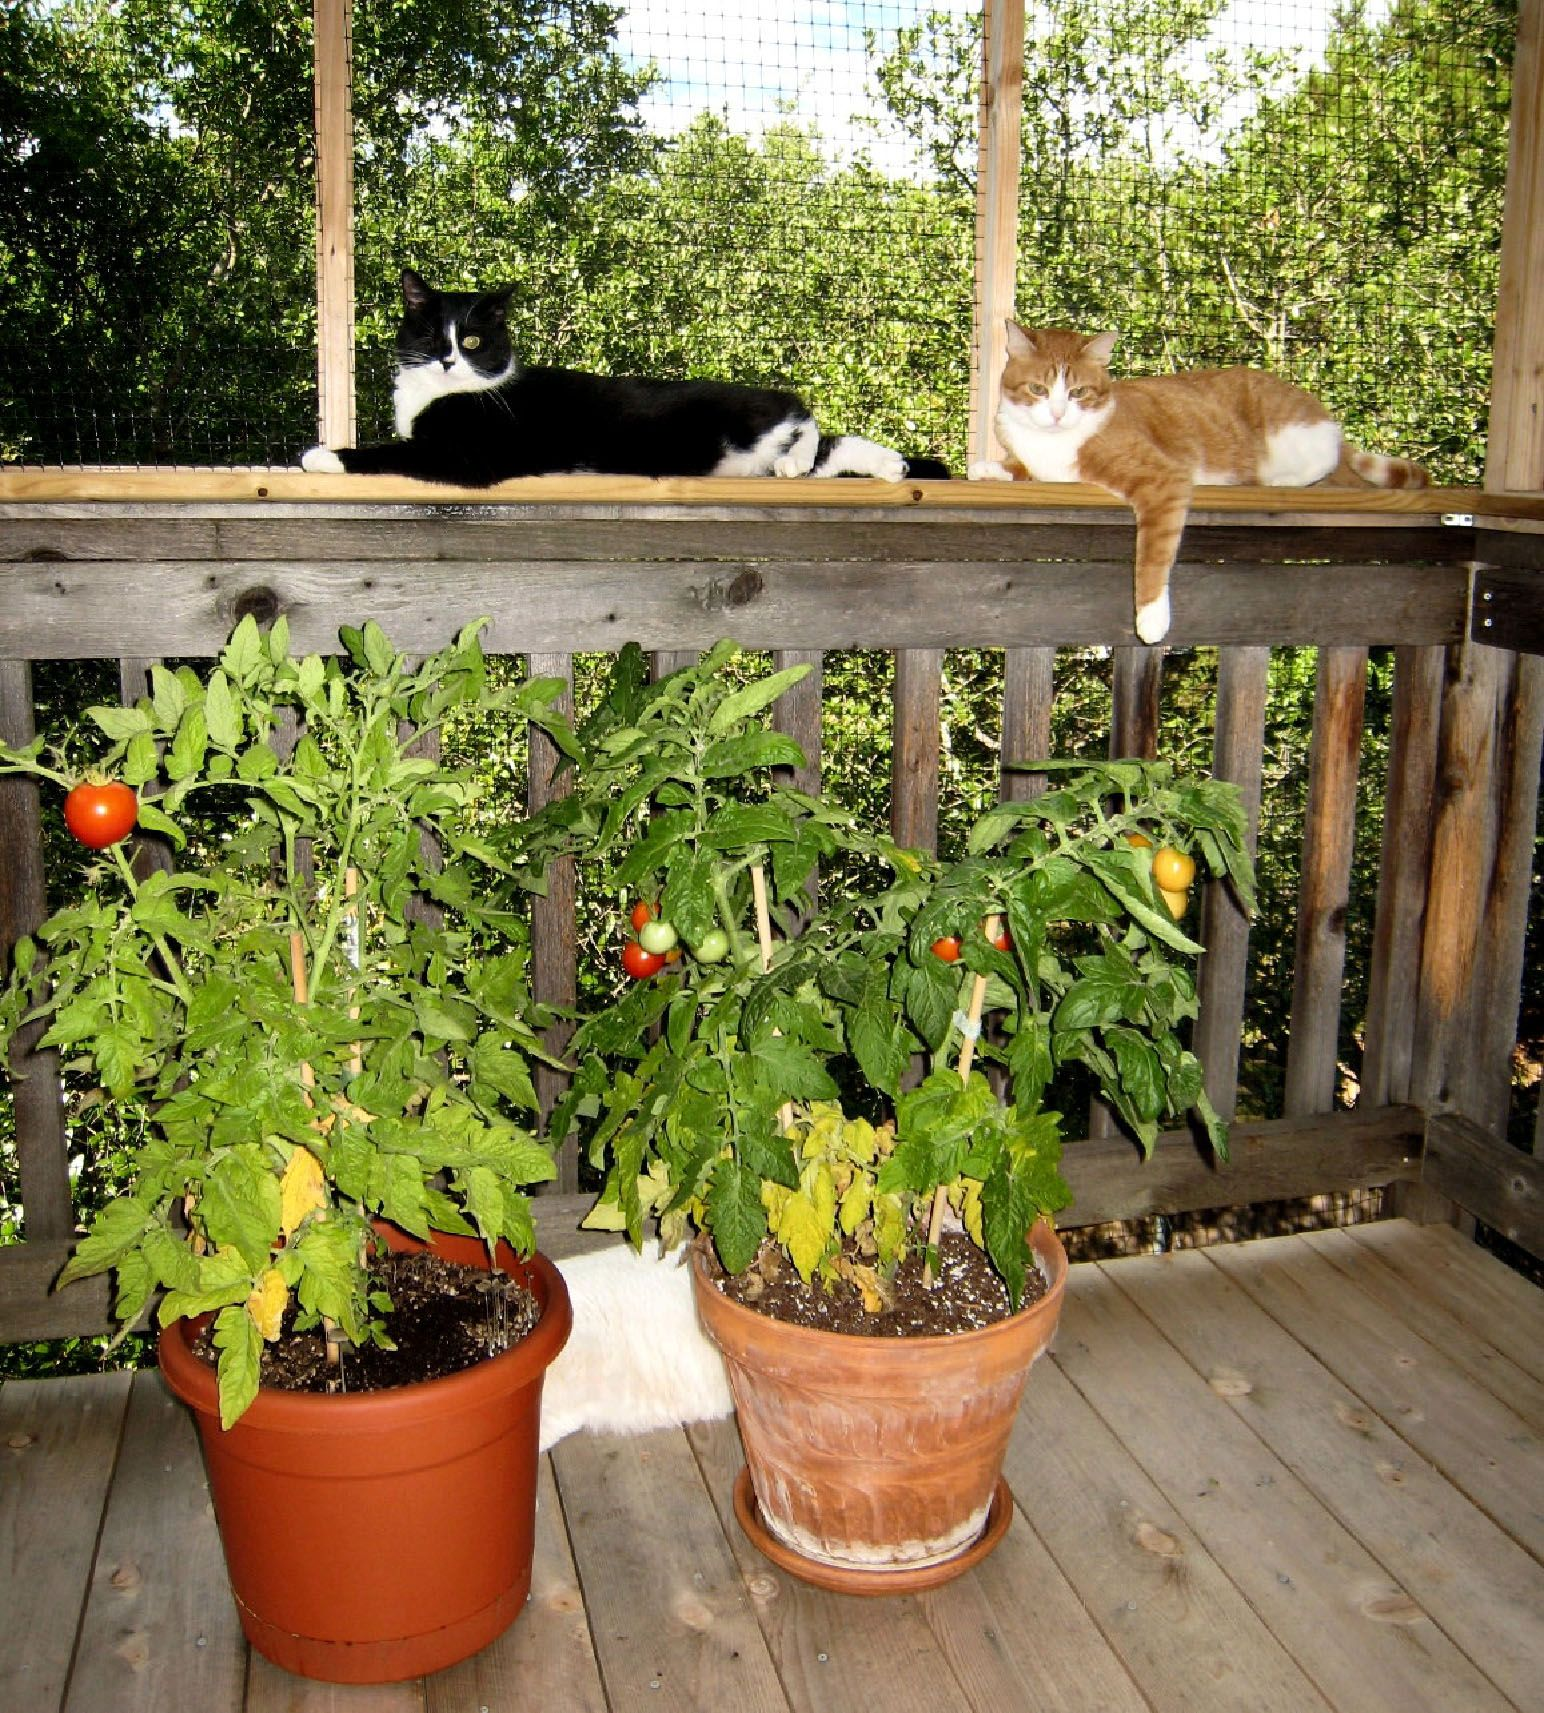 Checking on the Tomatoes Blossom discovers gardening.